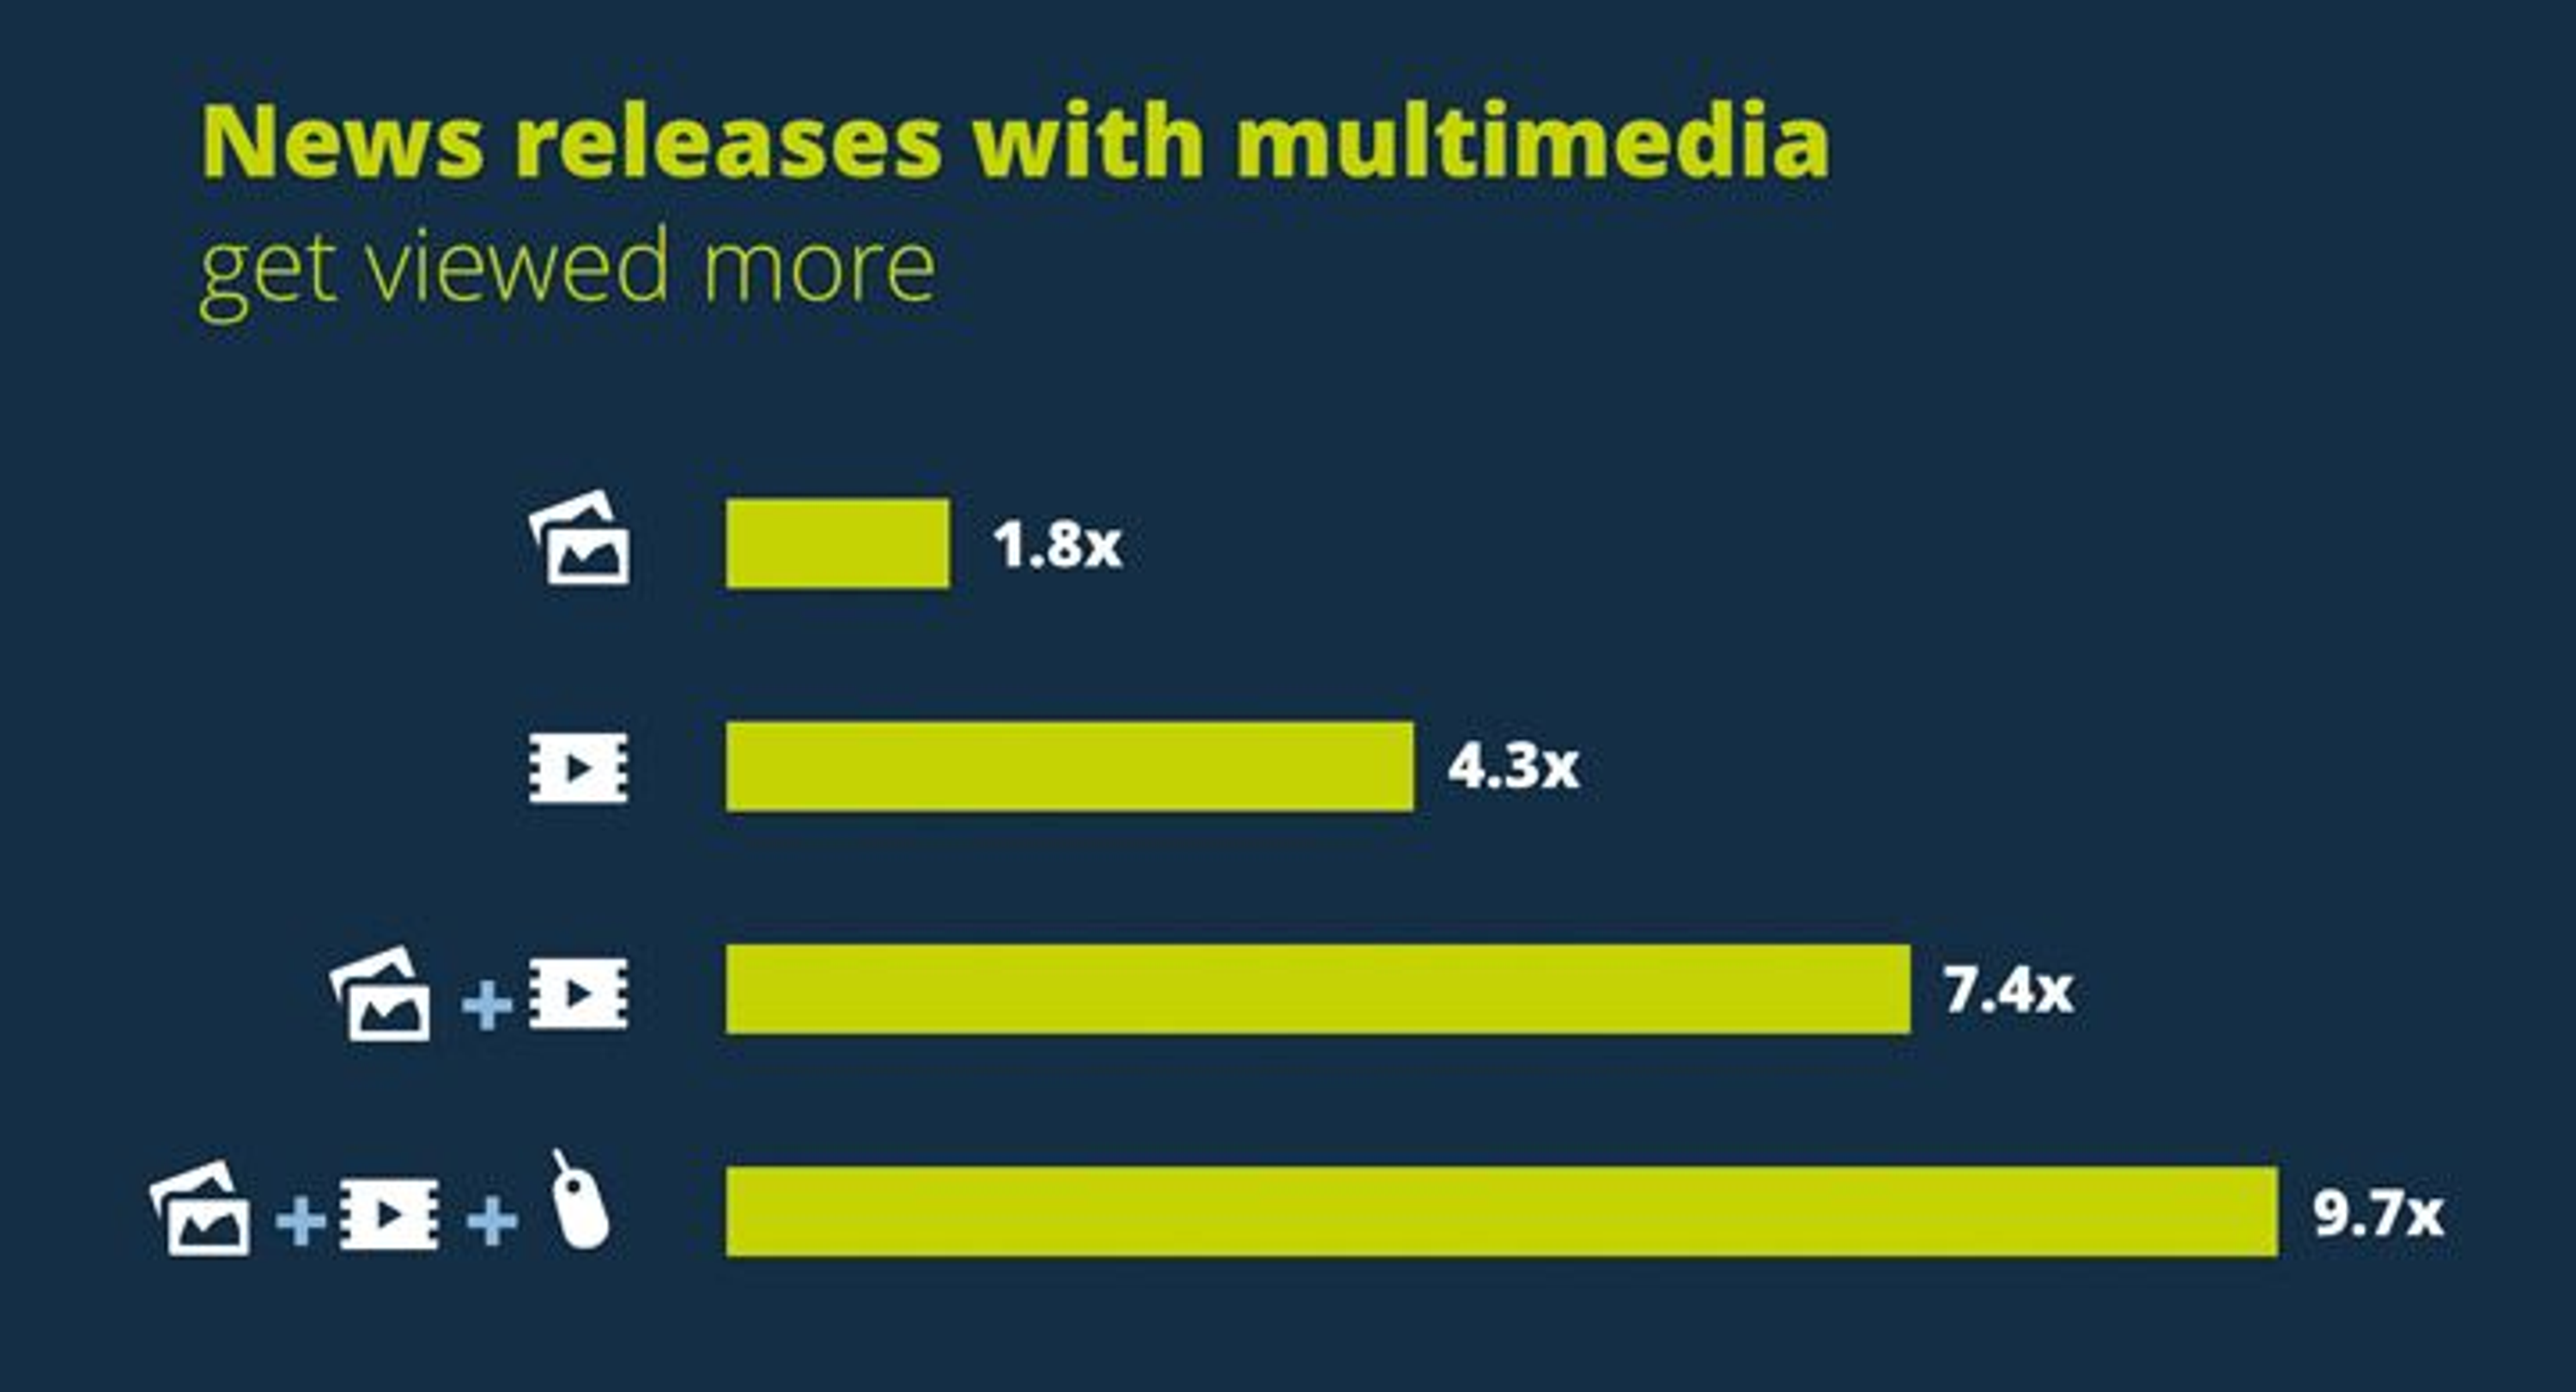 PR Newswire: Multimedia news releases get more views